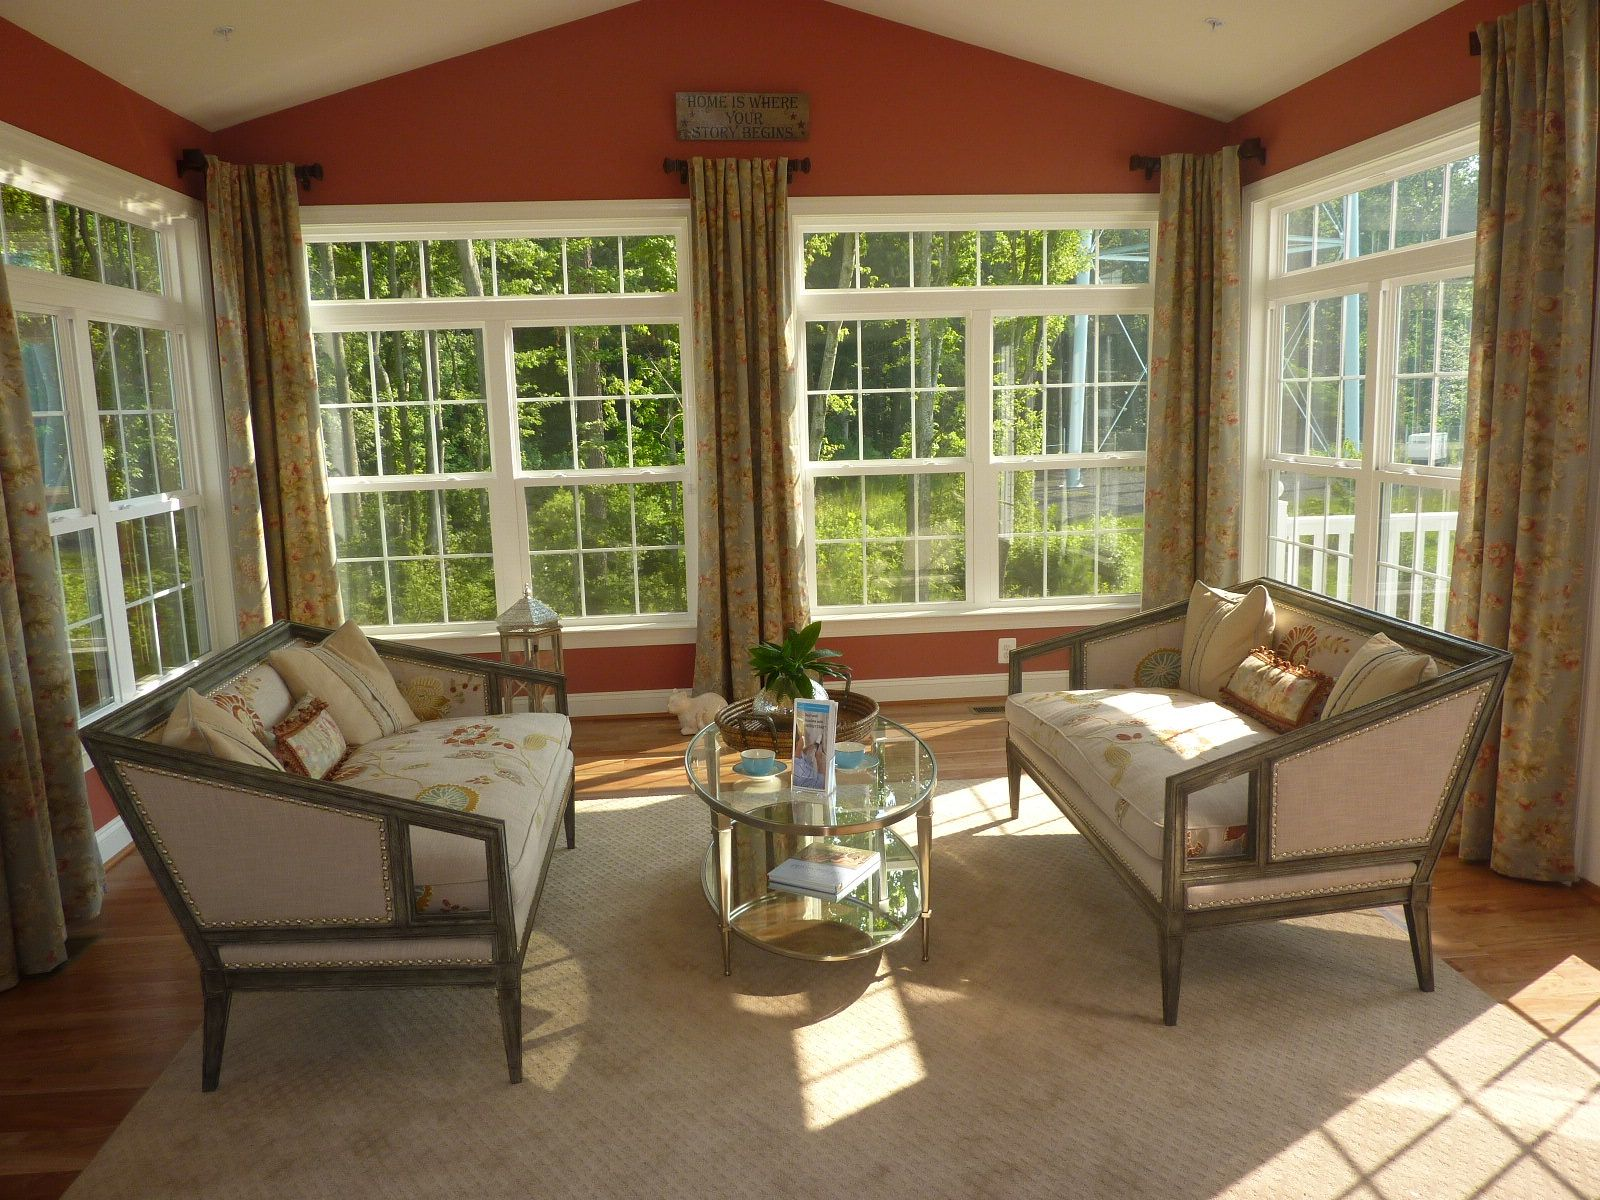 Window treatment ideas for a sunroom  sun room with unique idea of curtains in between windows instead of